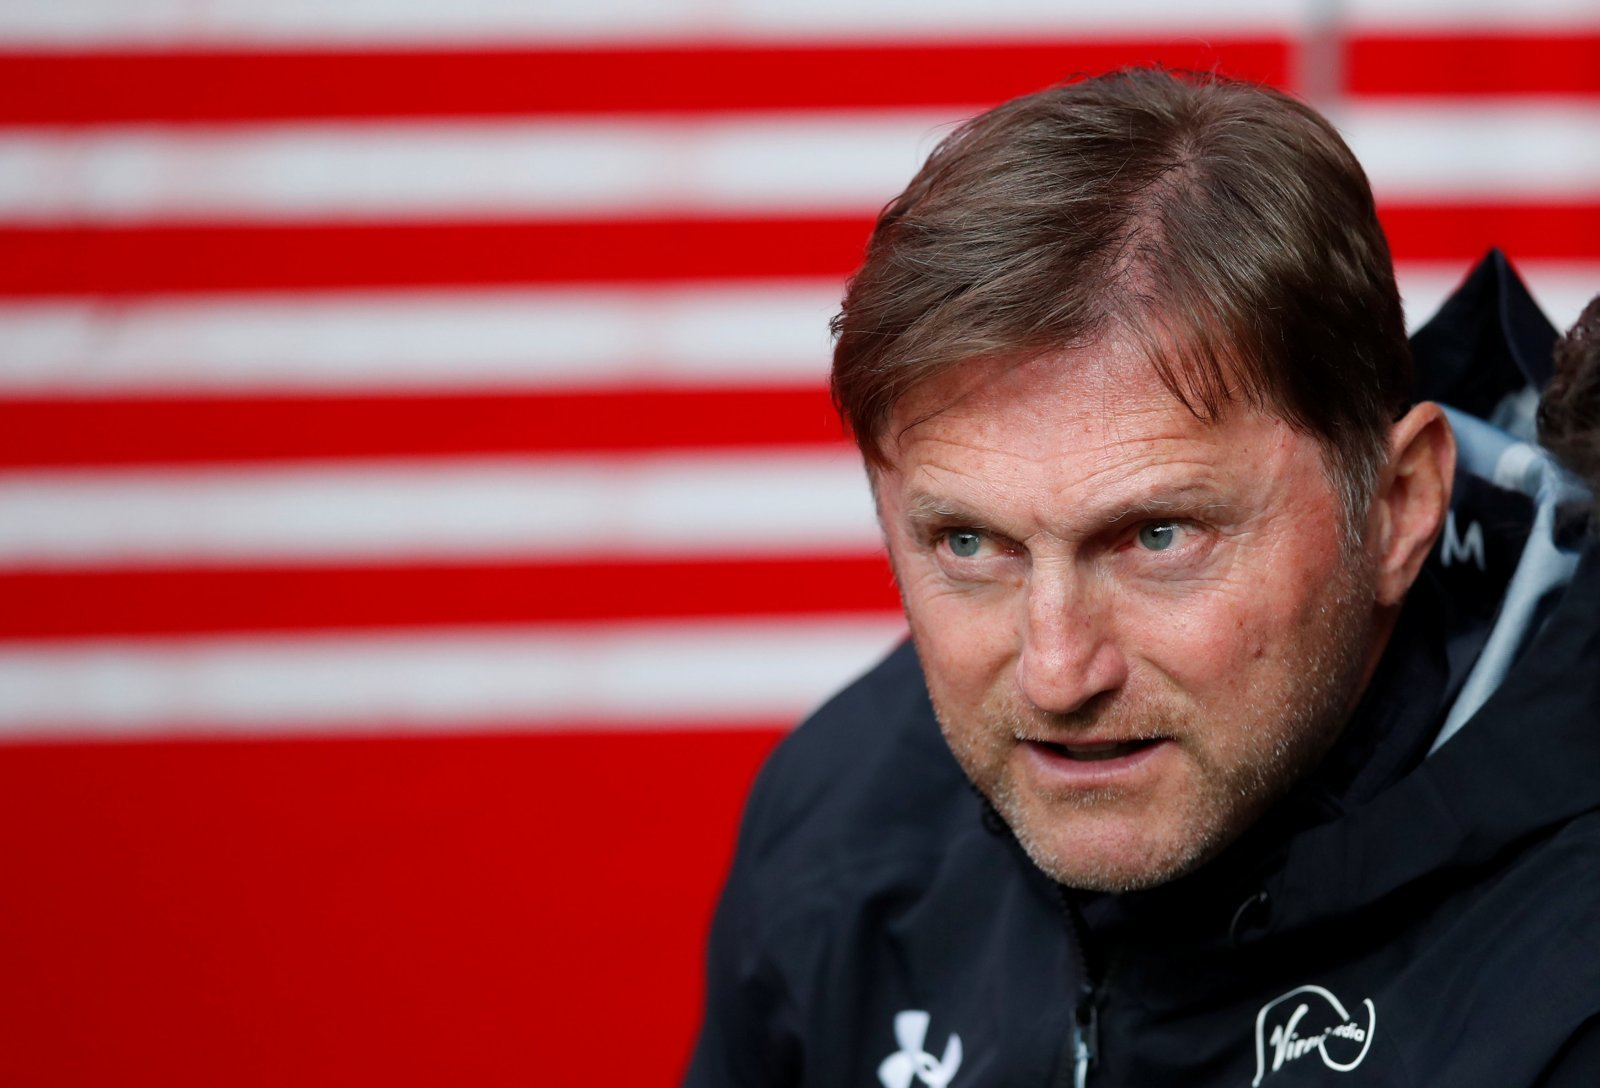 Southampton's Ralph Hasenhuttl refuses to comment on chances of signing Andre Schurrle